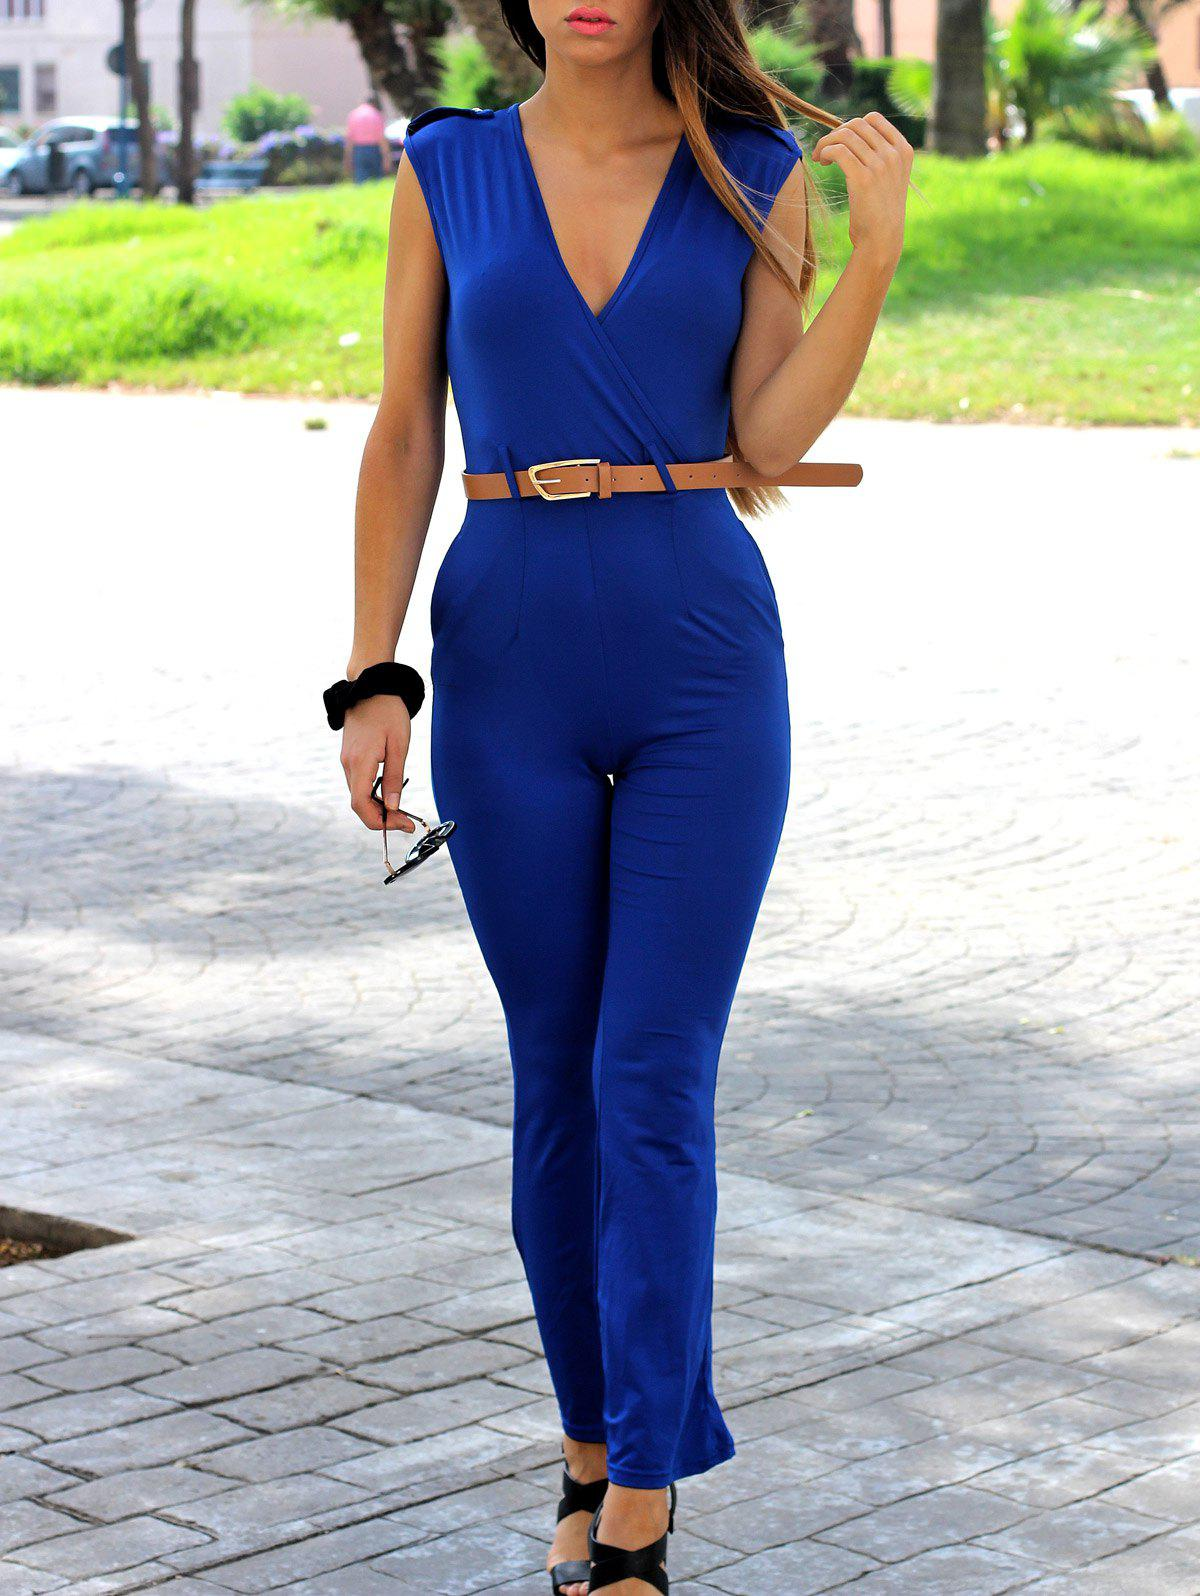 OL Style Women's V-Neck Sleeveless Solid Color Jumpsuit